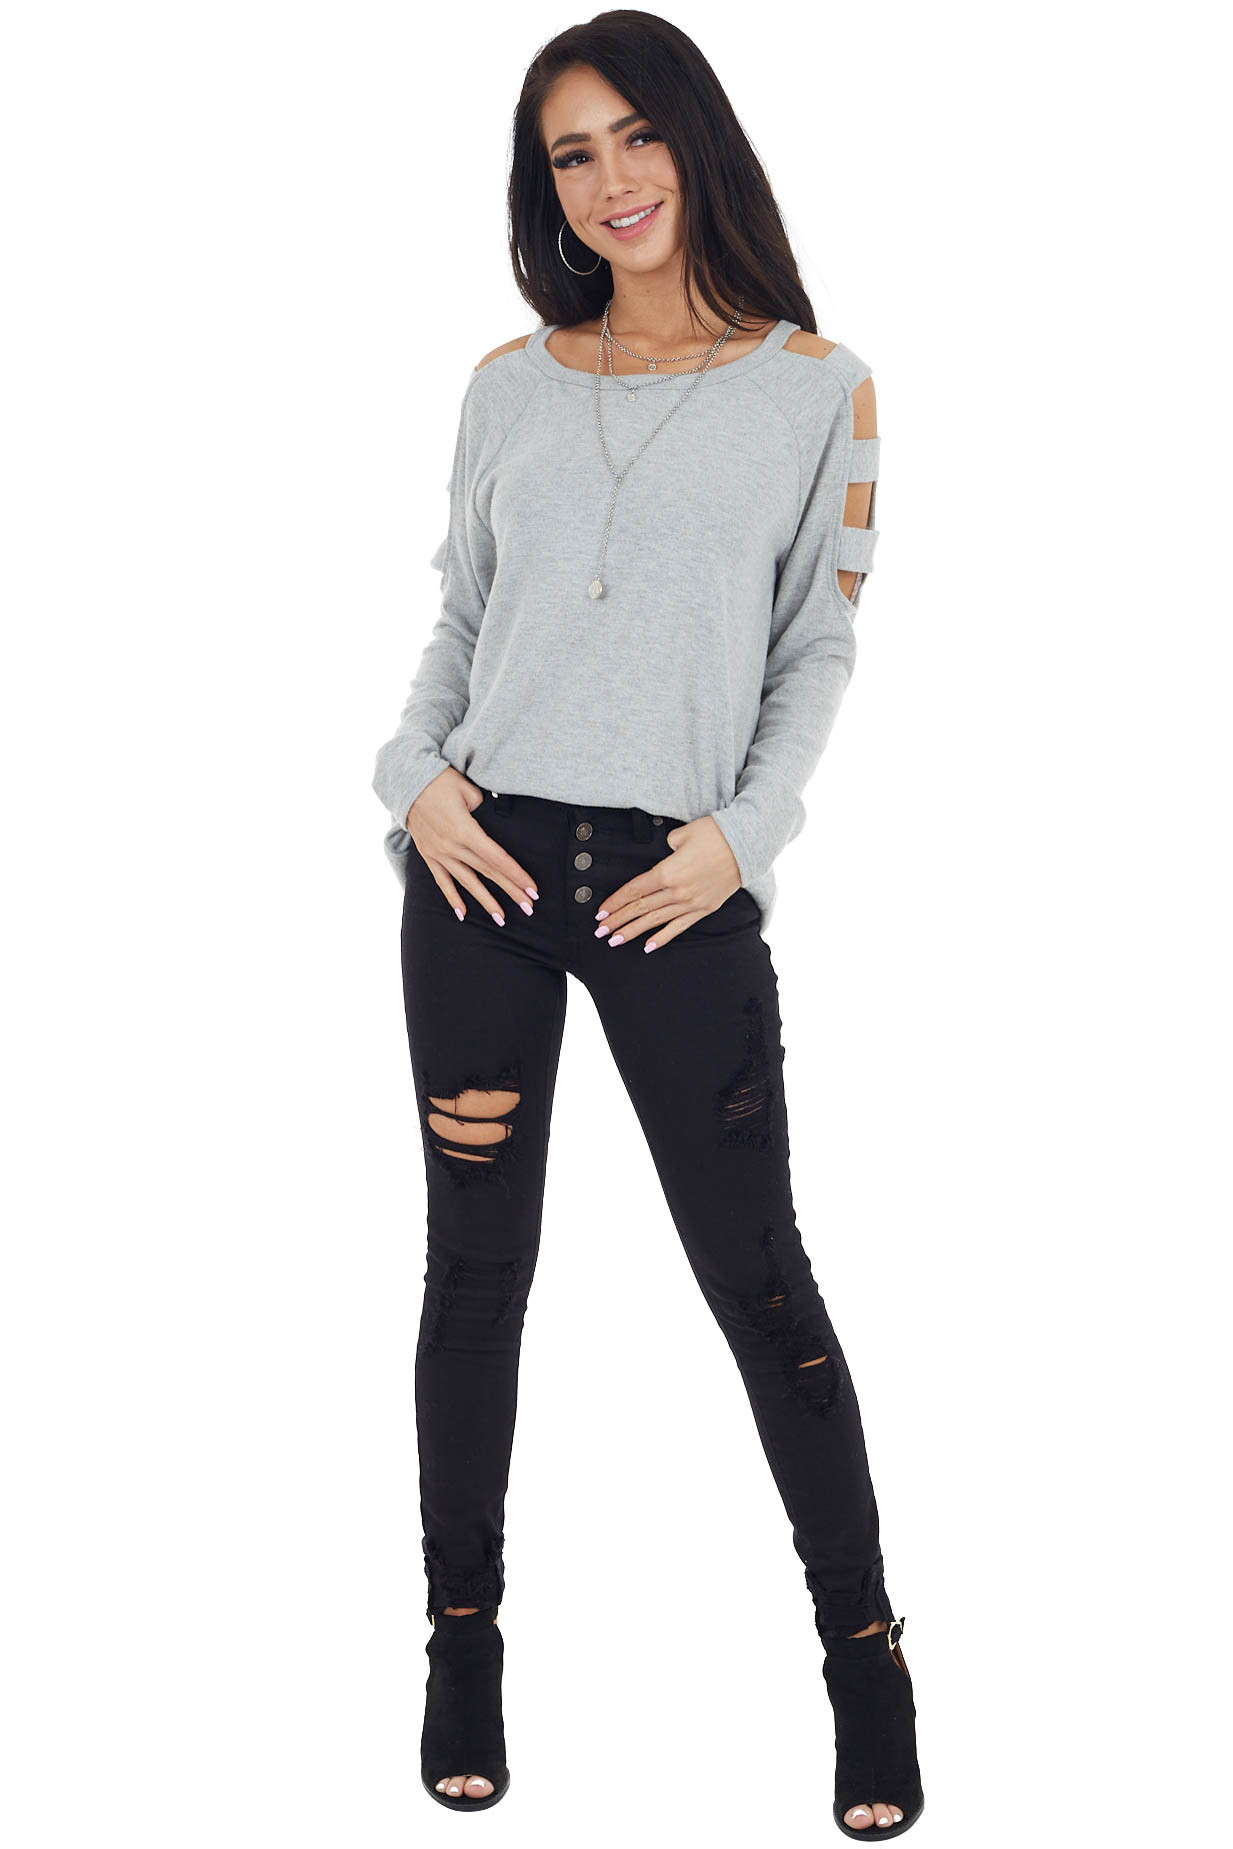 Dove Grey Long Sleeve Soft Knit Top with Ladder Details